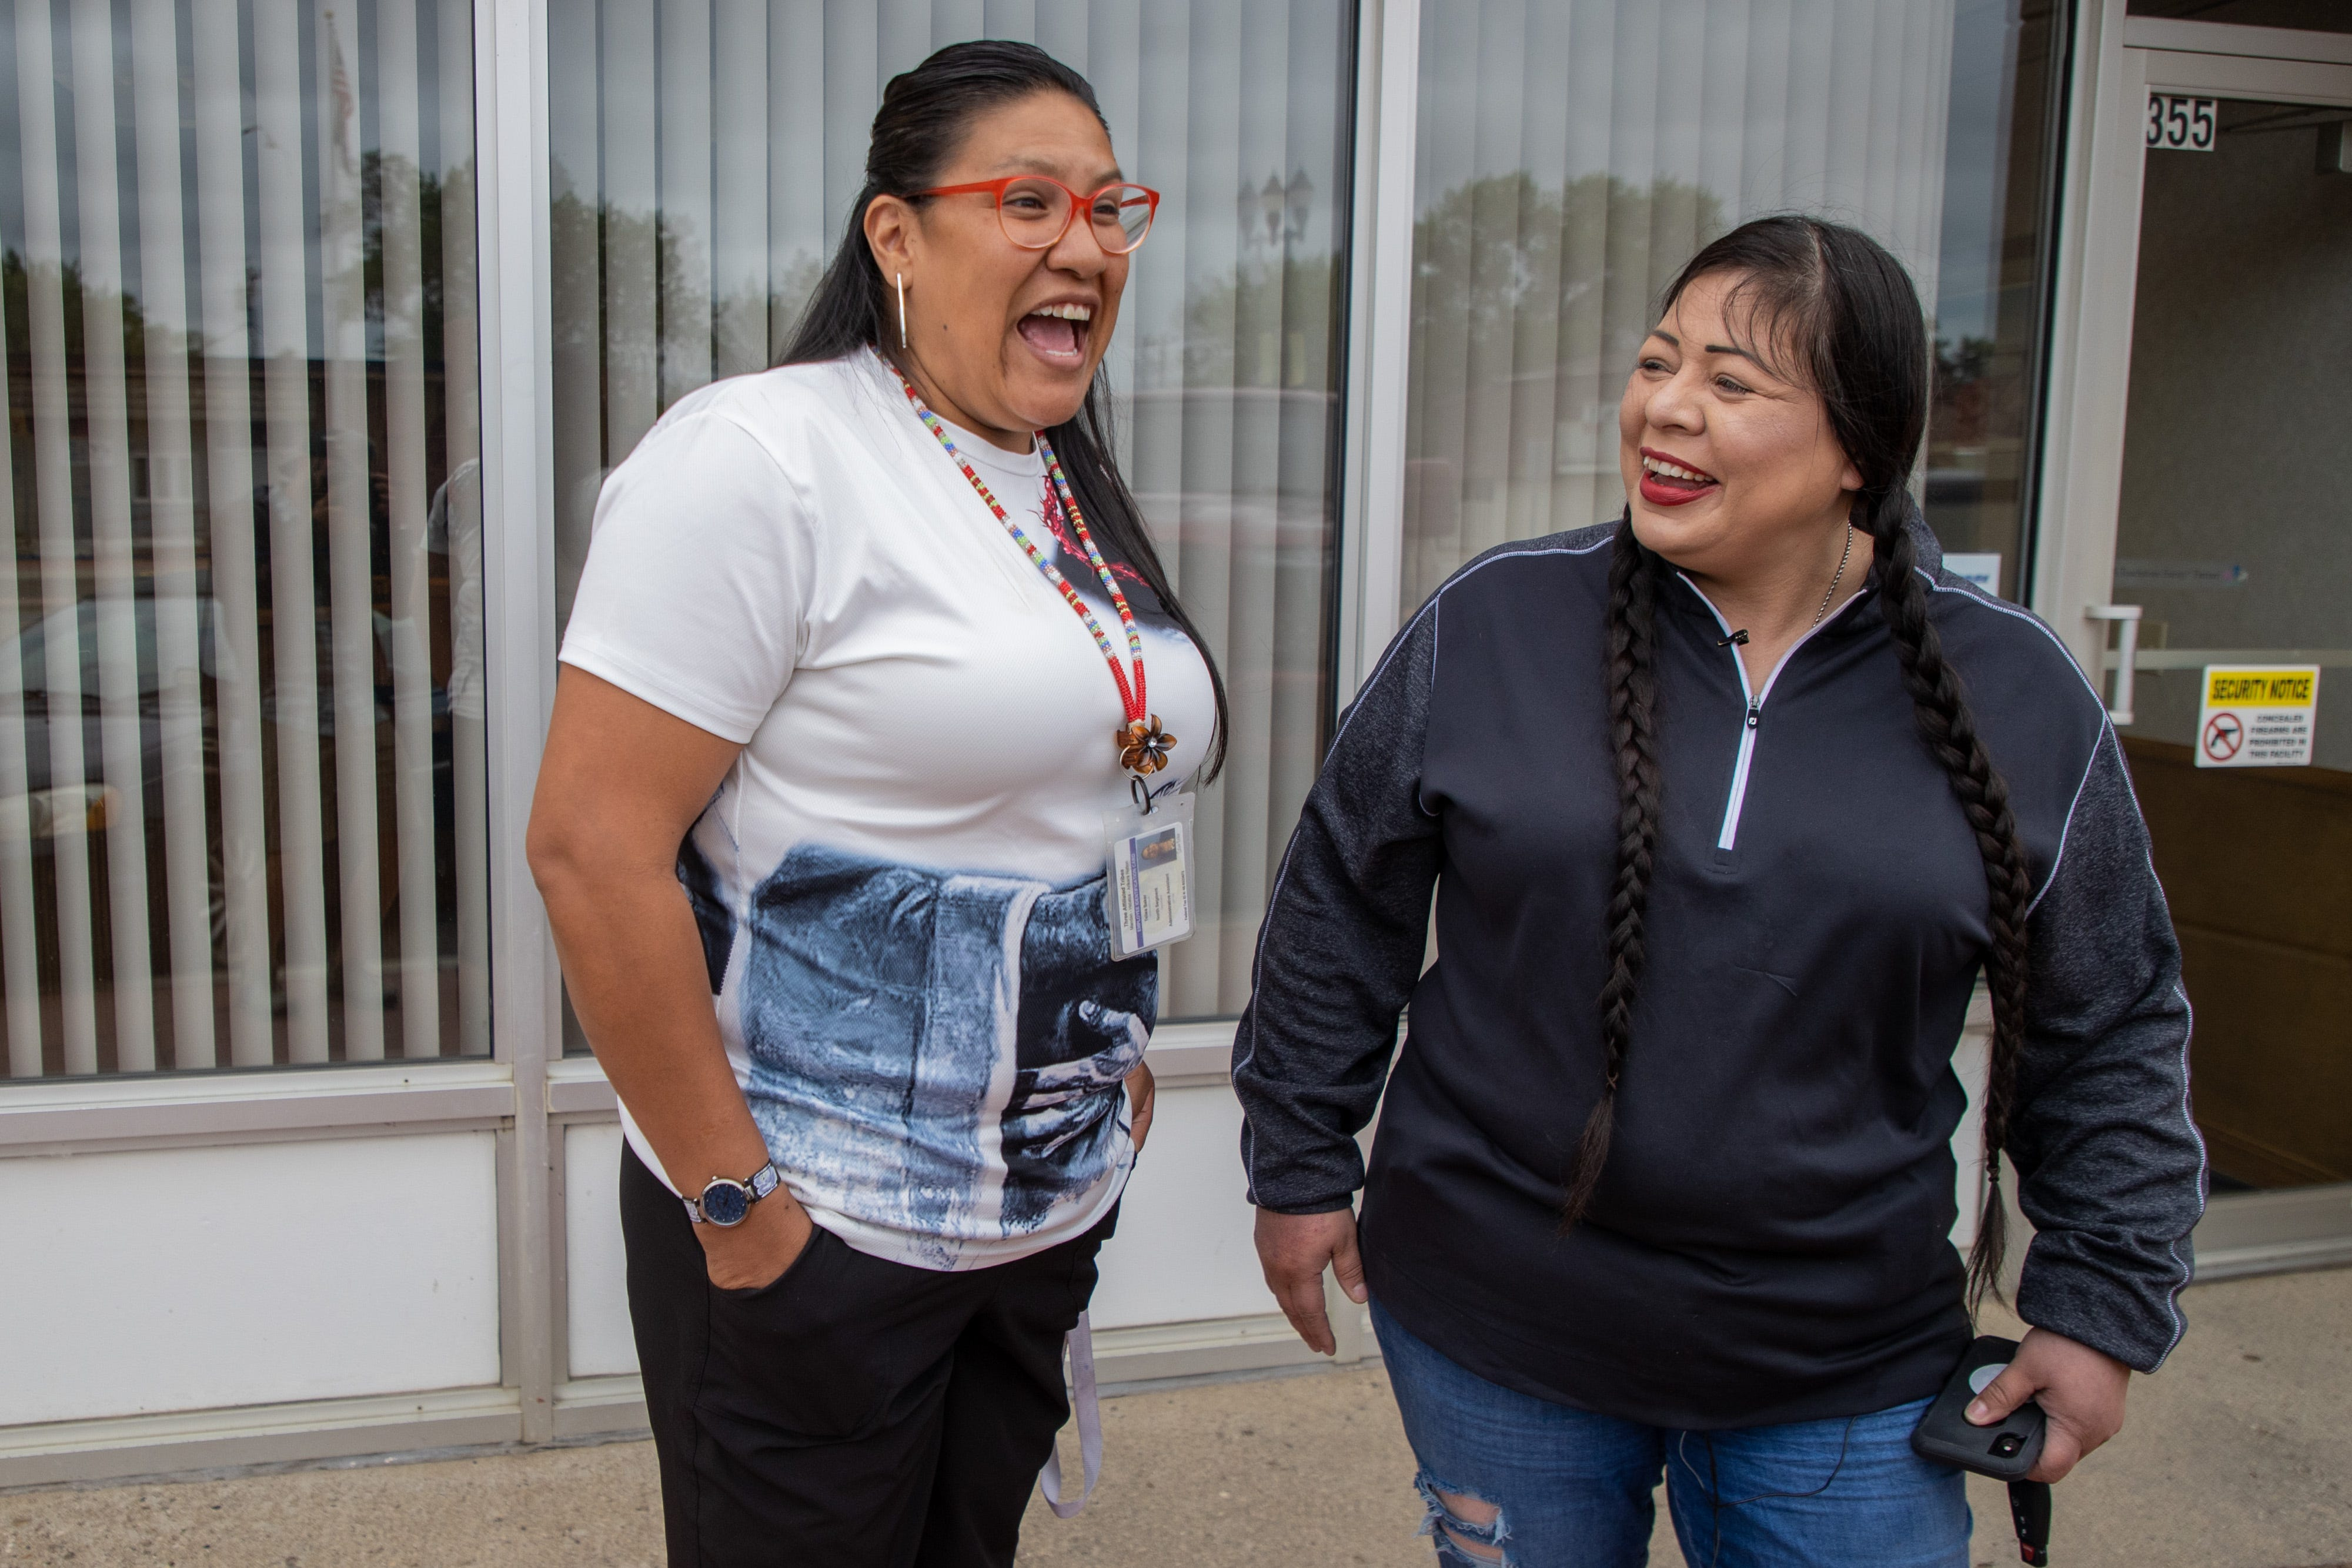 Fort Berthold Reservation resident Liea Baker, left, a former addict and current peer support specialist, has a laugh with her aunt, MHA Drug Enforcement special agent Dawn White, in downtown New Town, N.D.